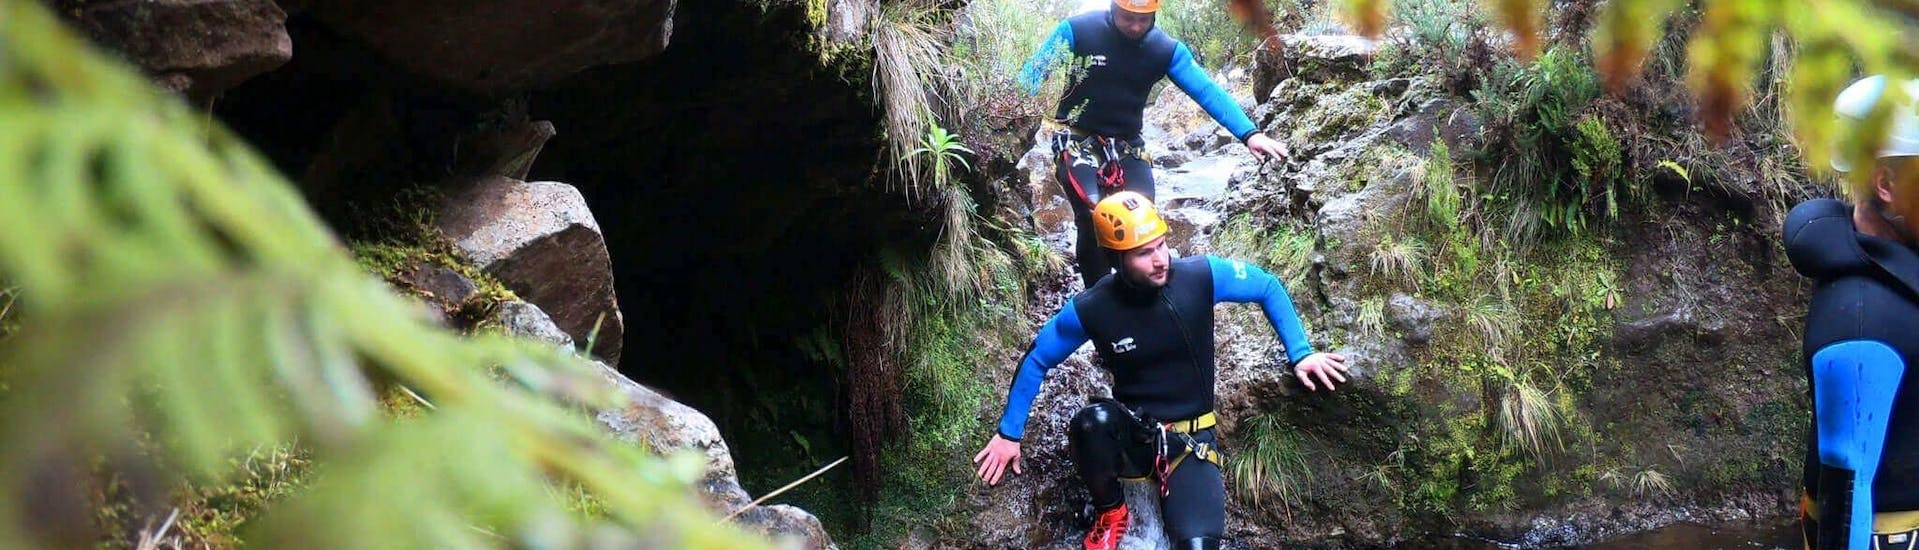 People canyoning in Ribeira do Lajeado with Madeira Adventure Kingdom.